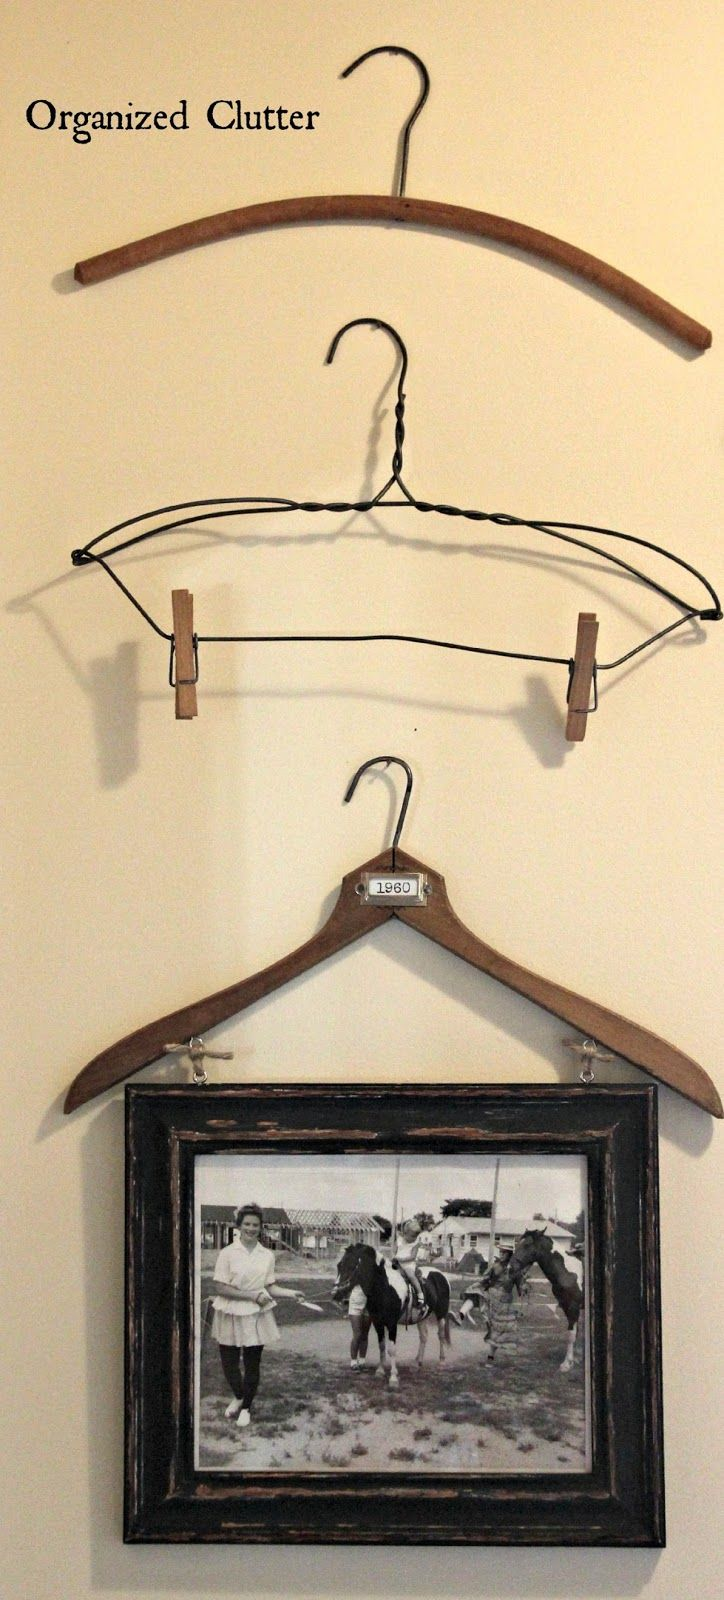 Vintage Clothes Hangers As Wall Decor www.organizedclutter.net